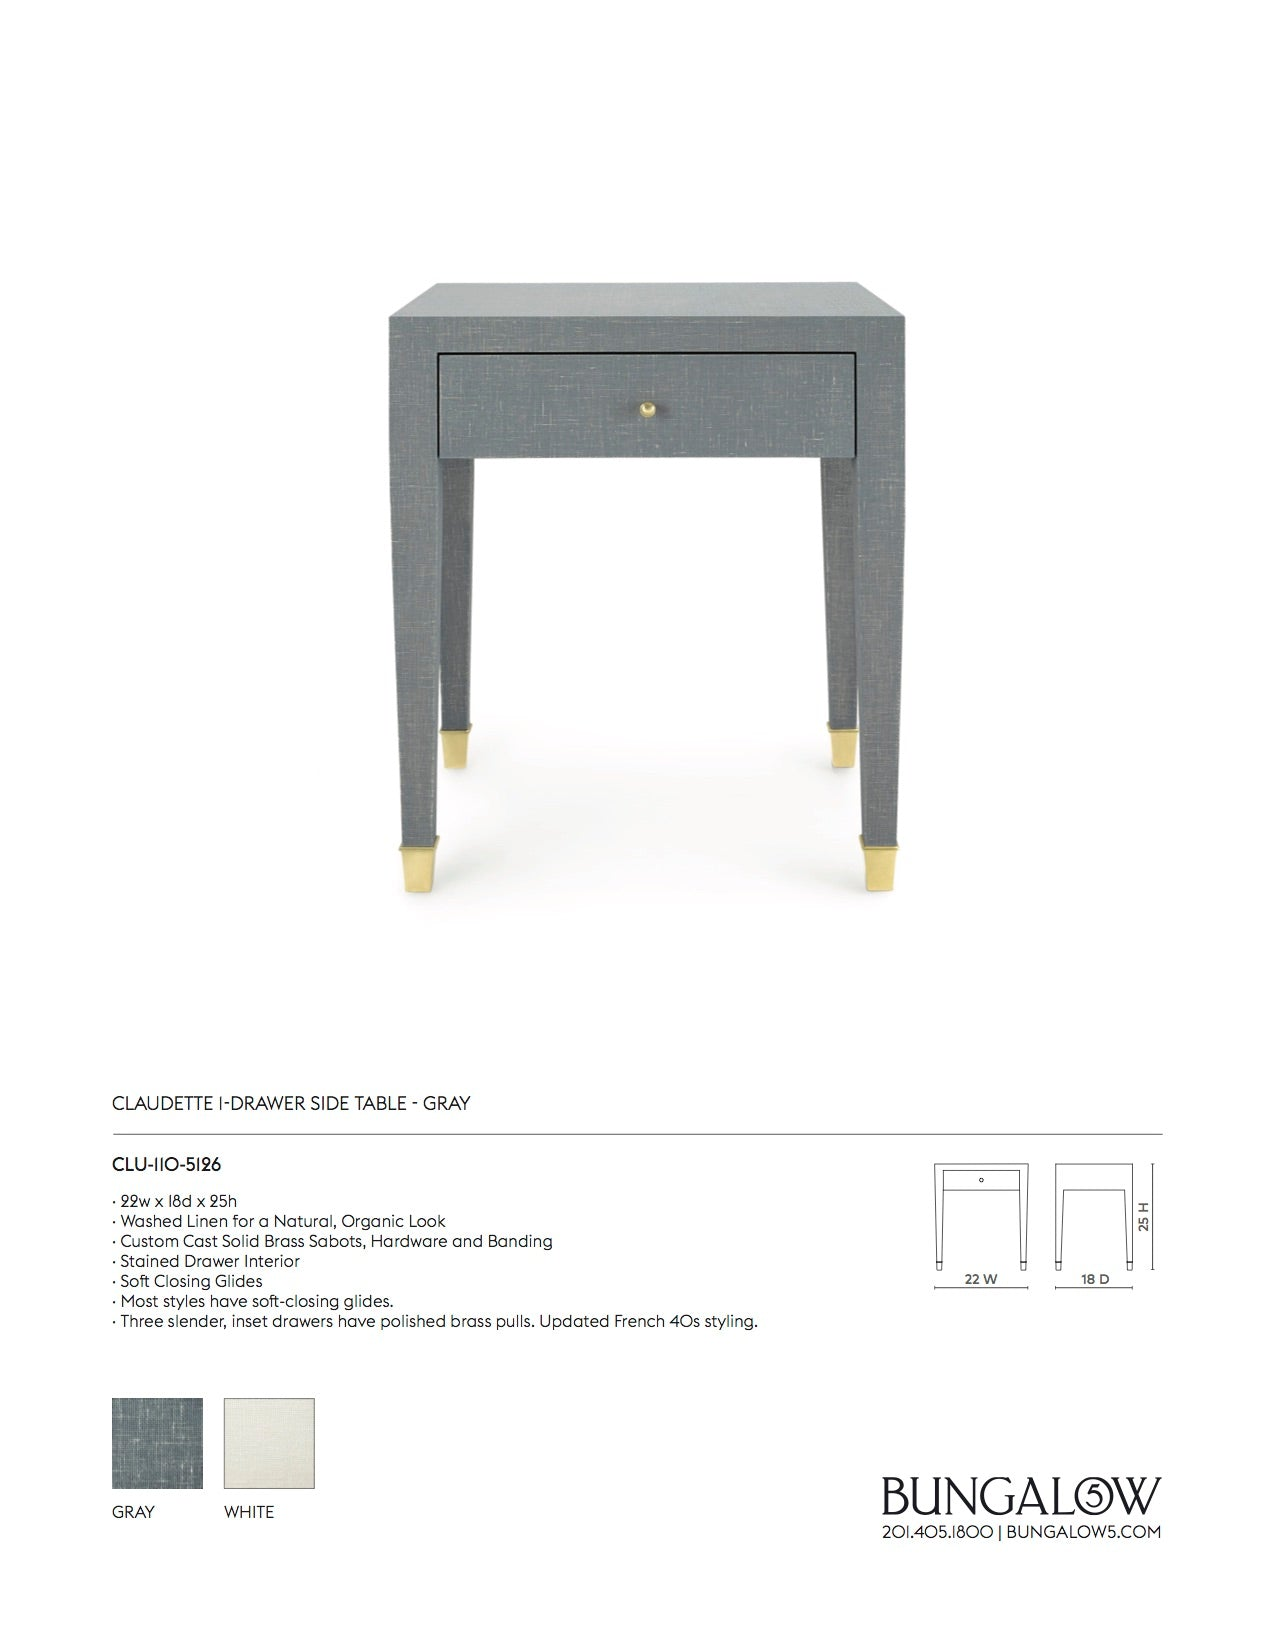 Bungalow 5 Claudette 1 Drawer Side Table Gray Tearsheet